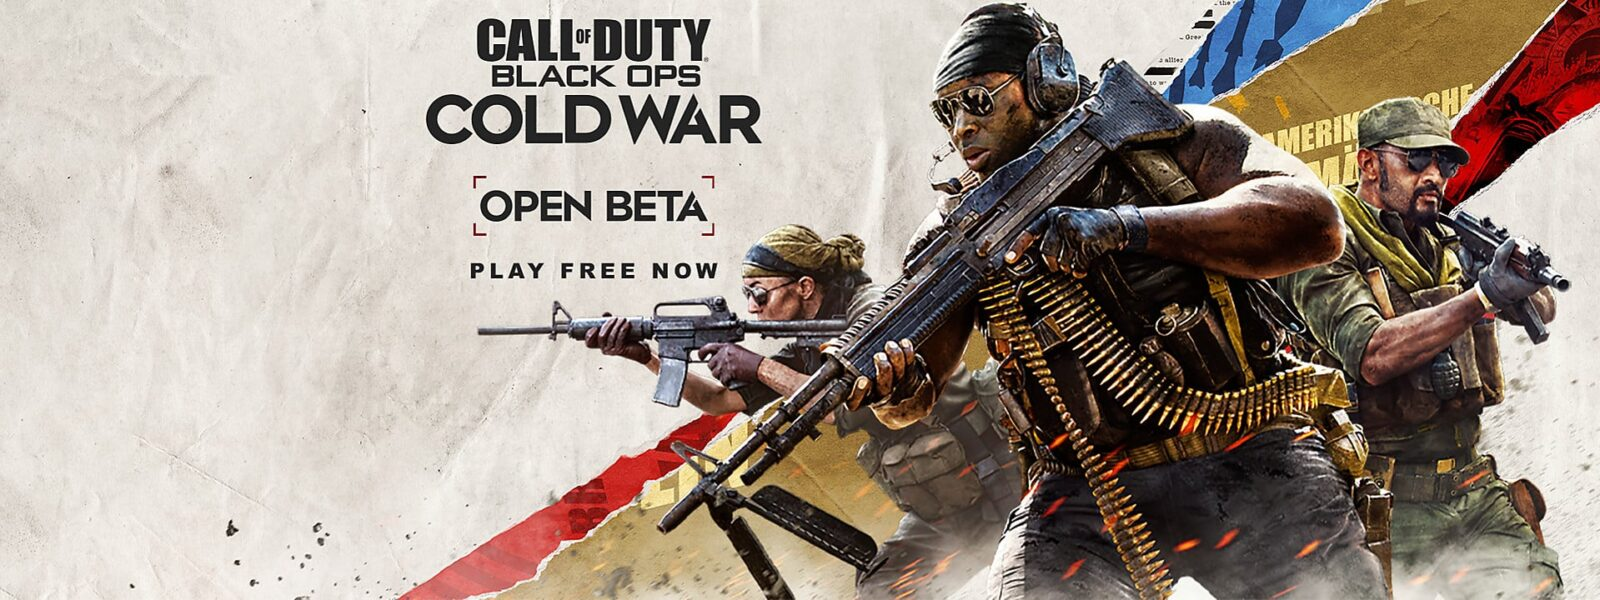 Call Of Duty Black Ops Cold War Open Beta How To Download On Ps4 Xbox And Pc Techidence